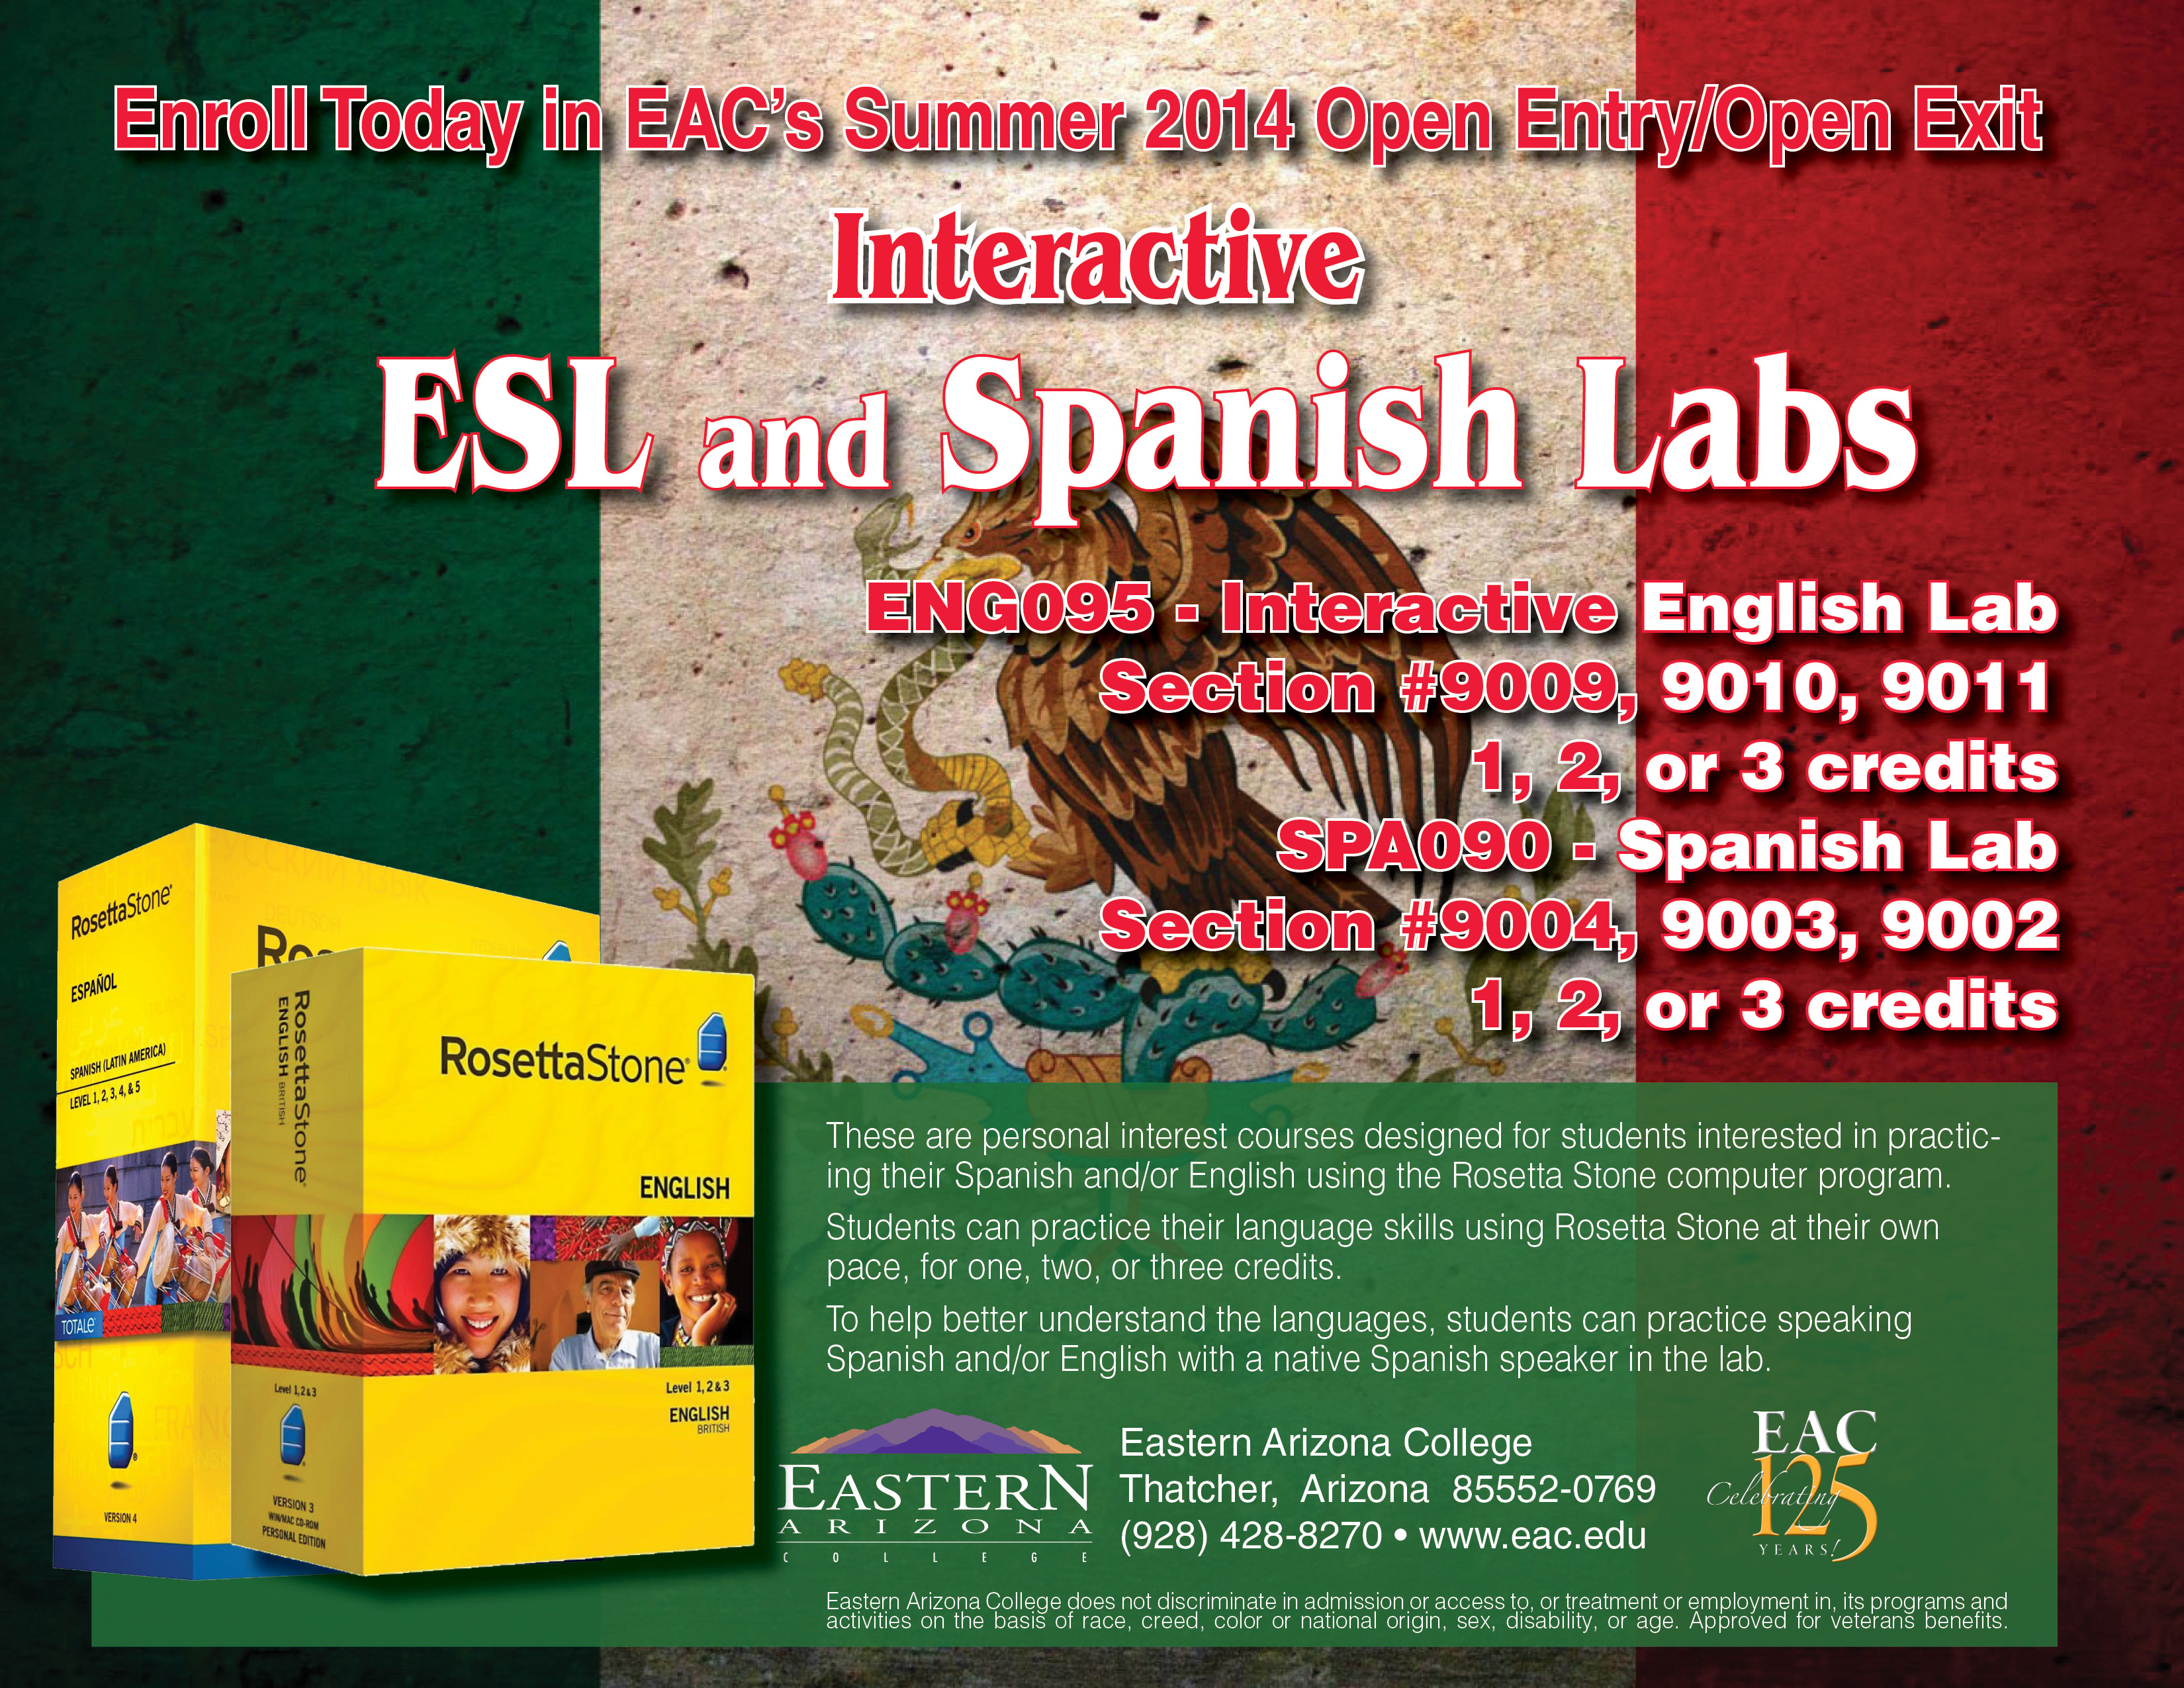 News Releases Details - EAC offering ESL and Spanish classes